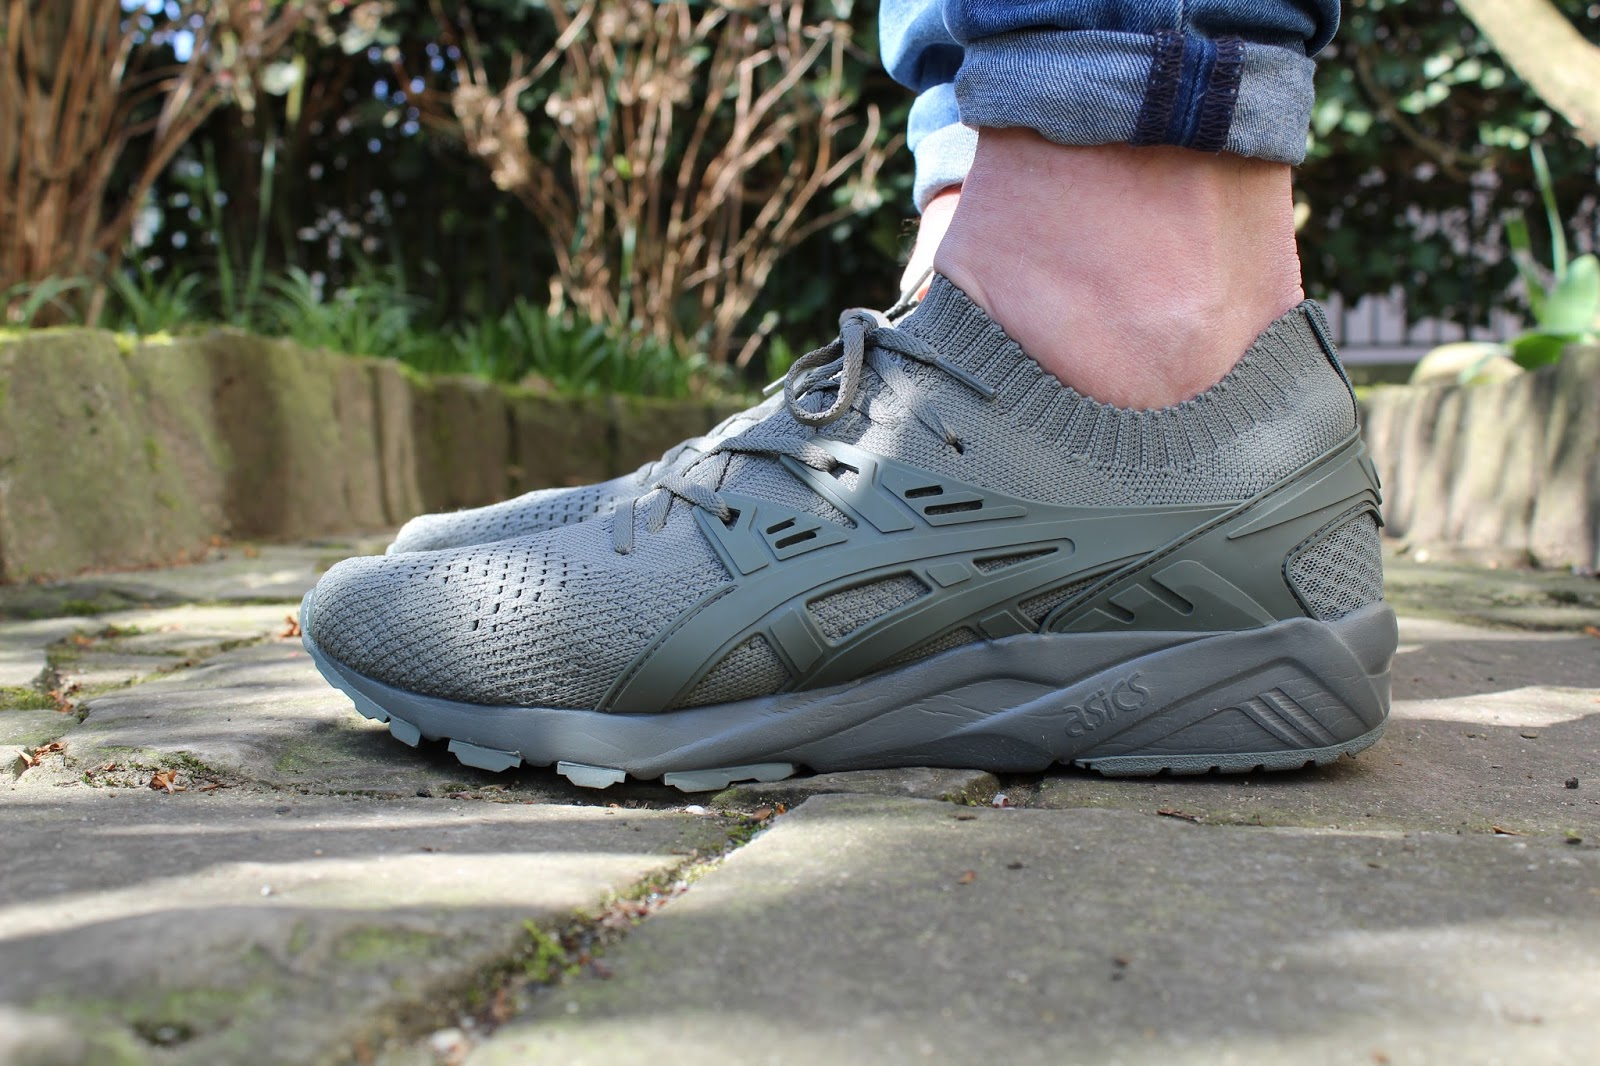 ASICS GEL KAYANO TRAINER KNIT in Grey am Fuß